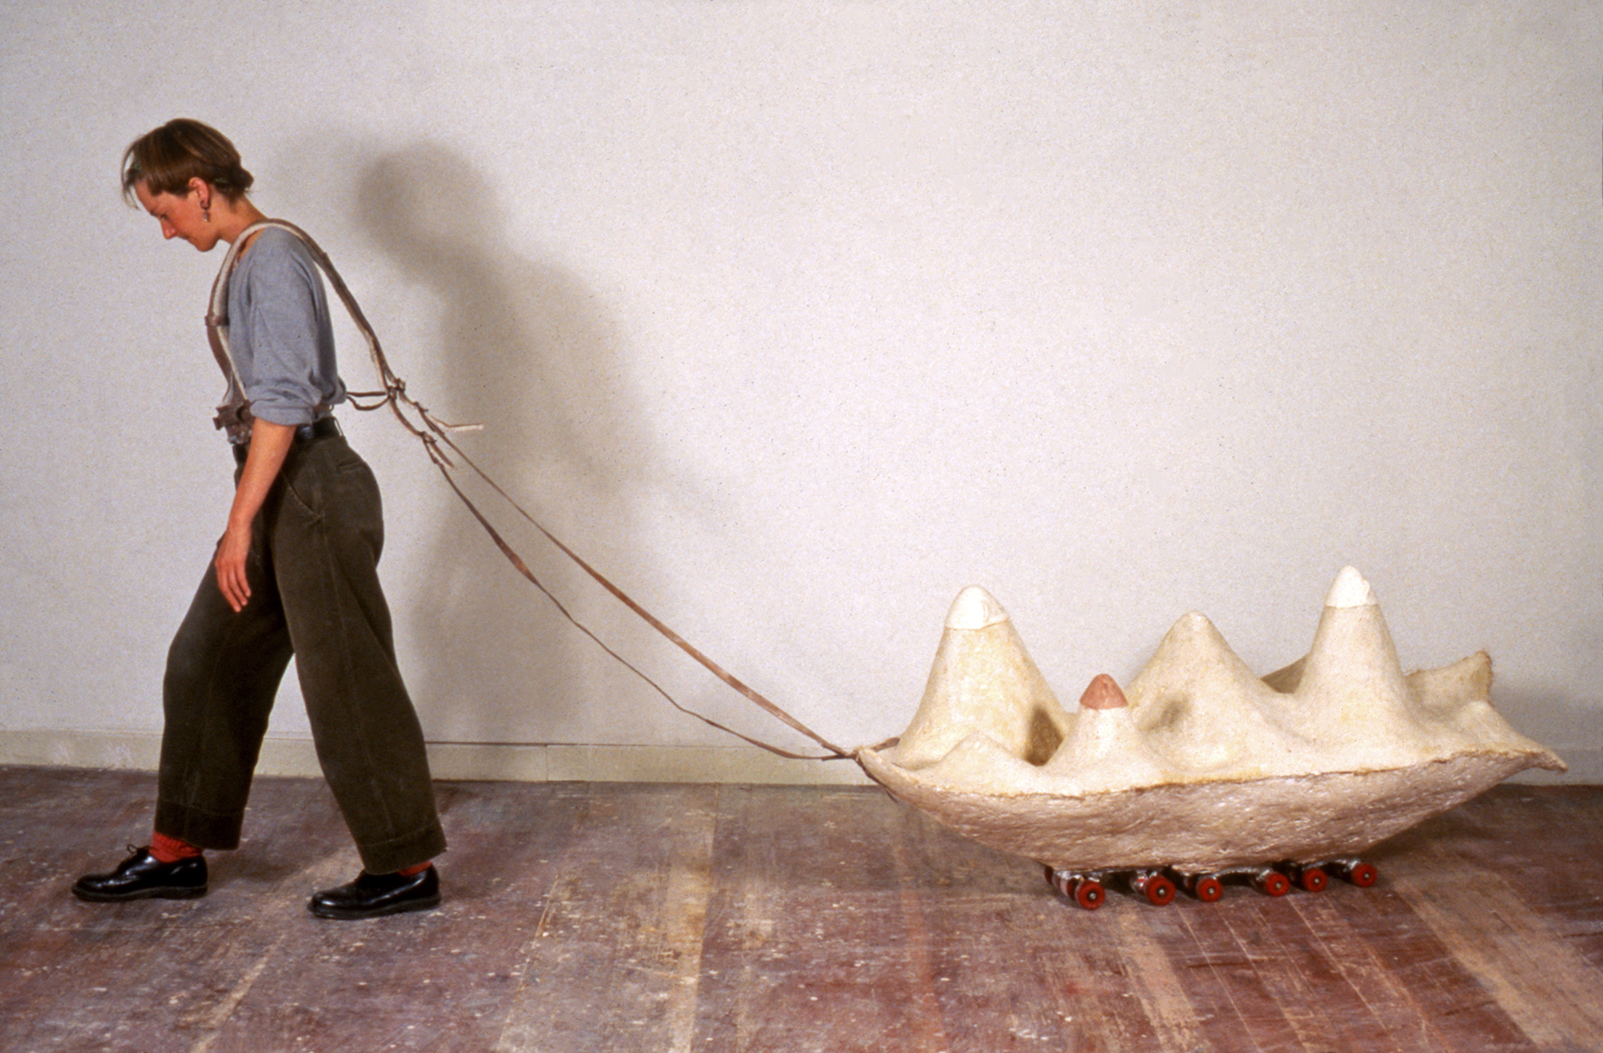 ISLAND (1991) / Plaster and leather, 21 x 34 x 45""